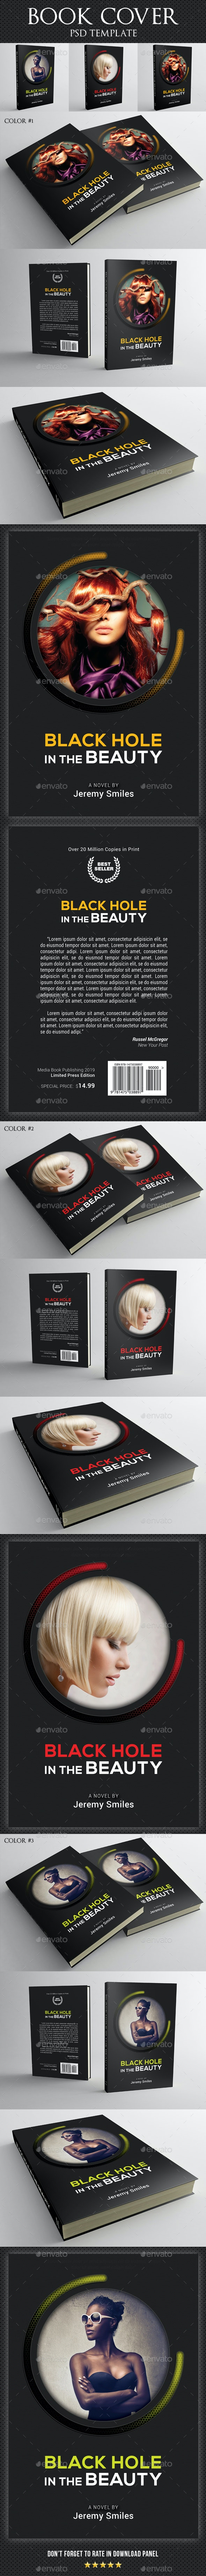 Book Cover Template 69 - Miscellaneous Print Templates